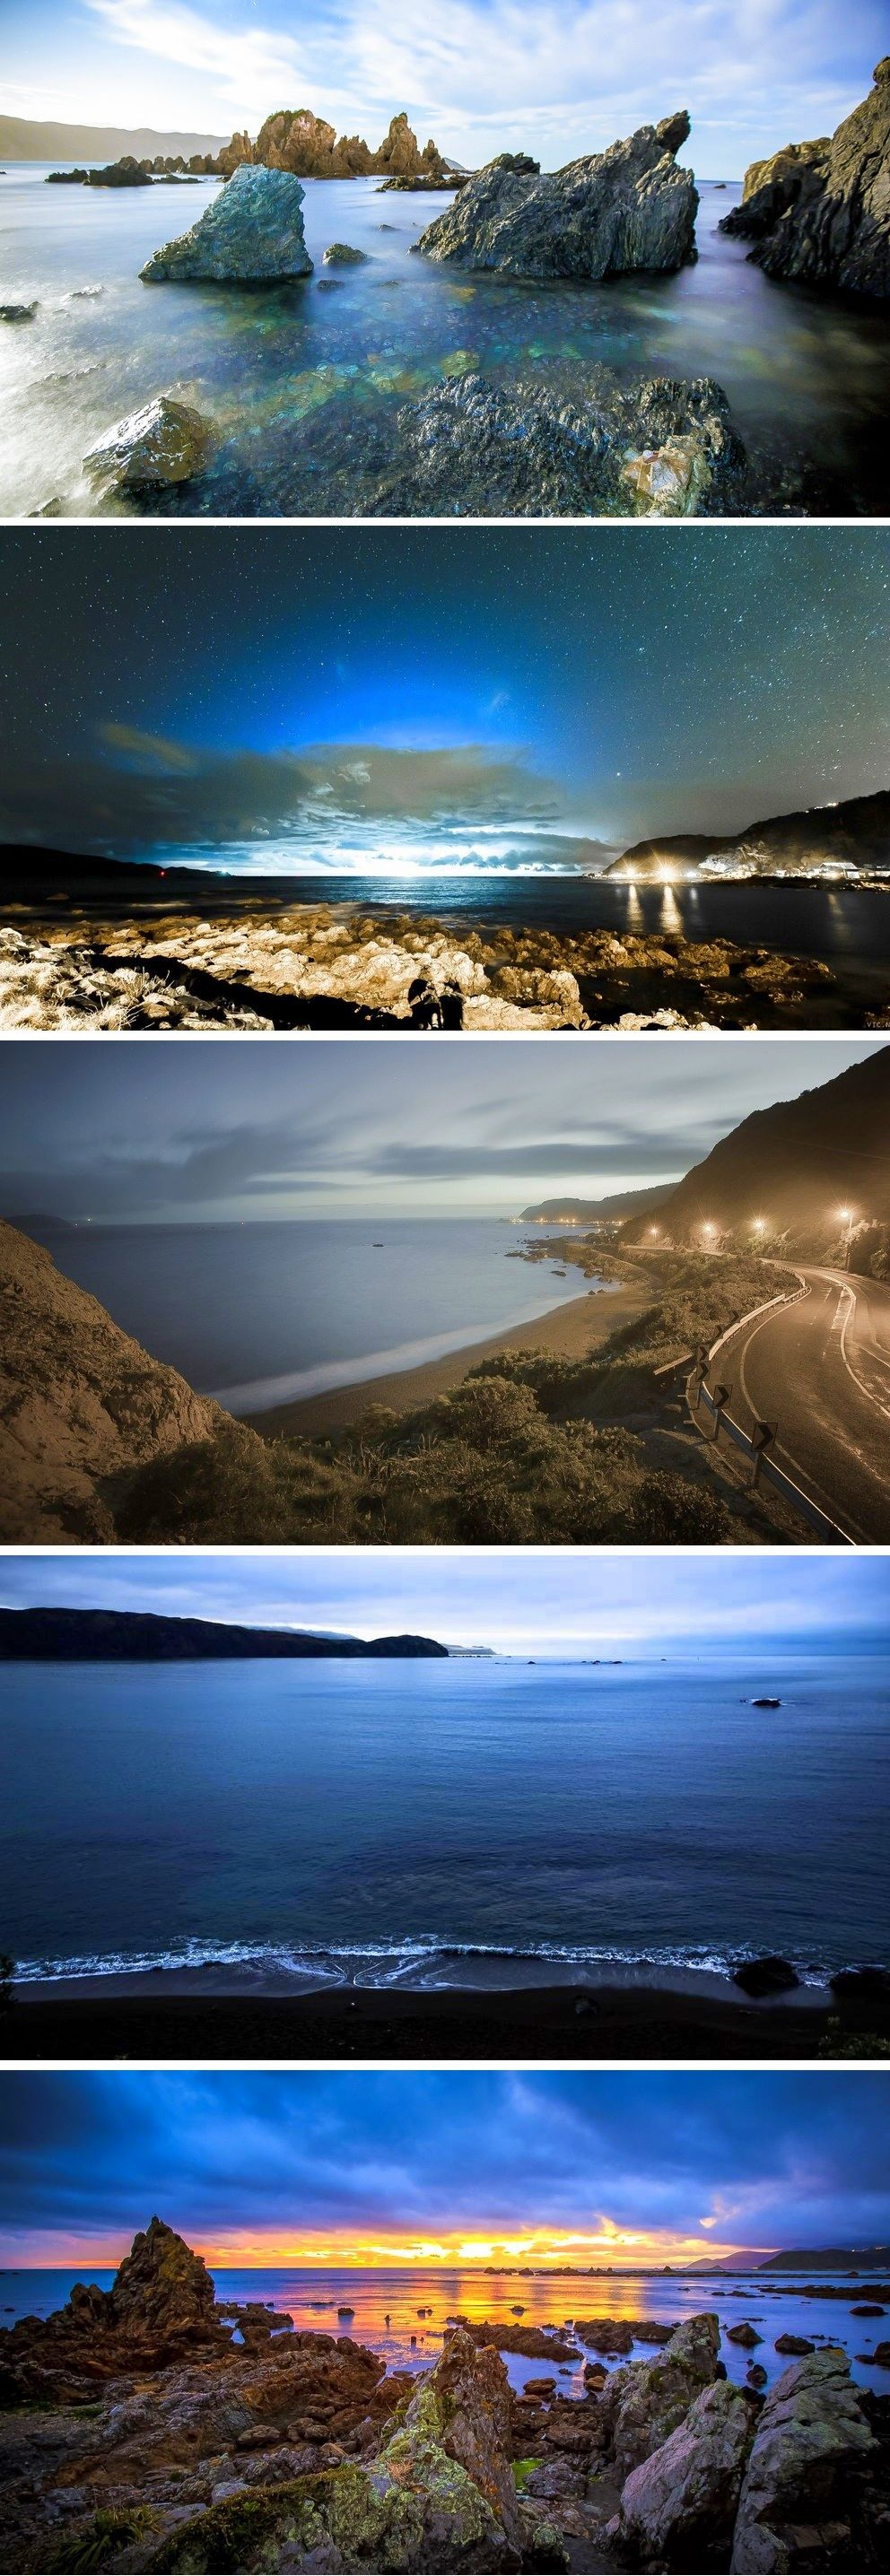 Breaker Bay Is A Rugged Coastal Suburb Located On The South Eastern End Of Wellington New Zealand Wellington New Zealand New Zealand Travel New Zealand Houses